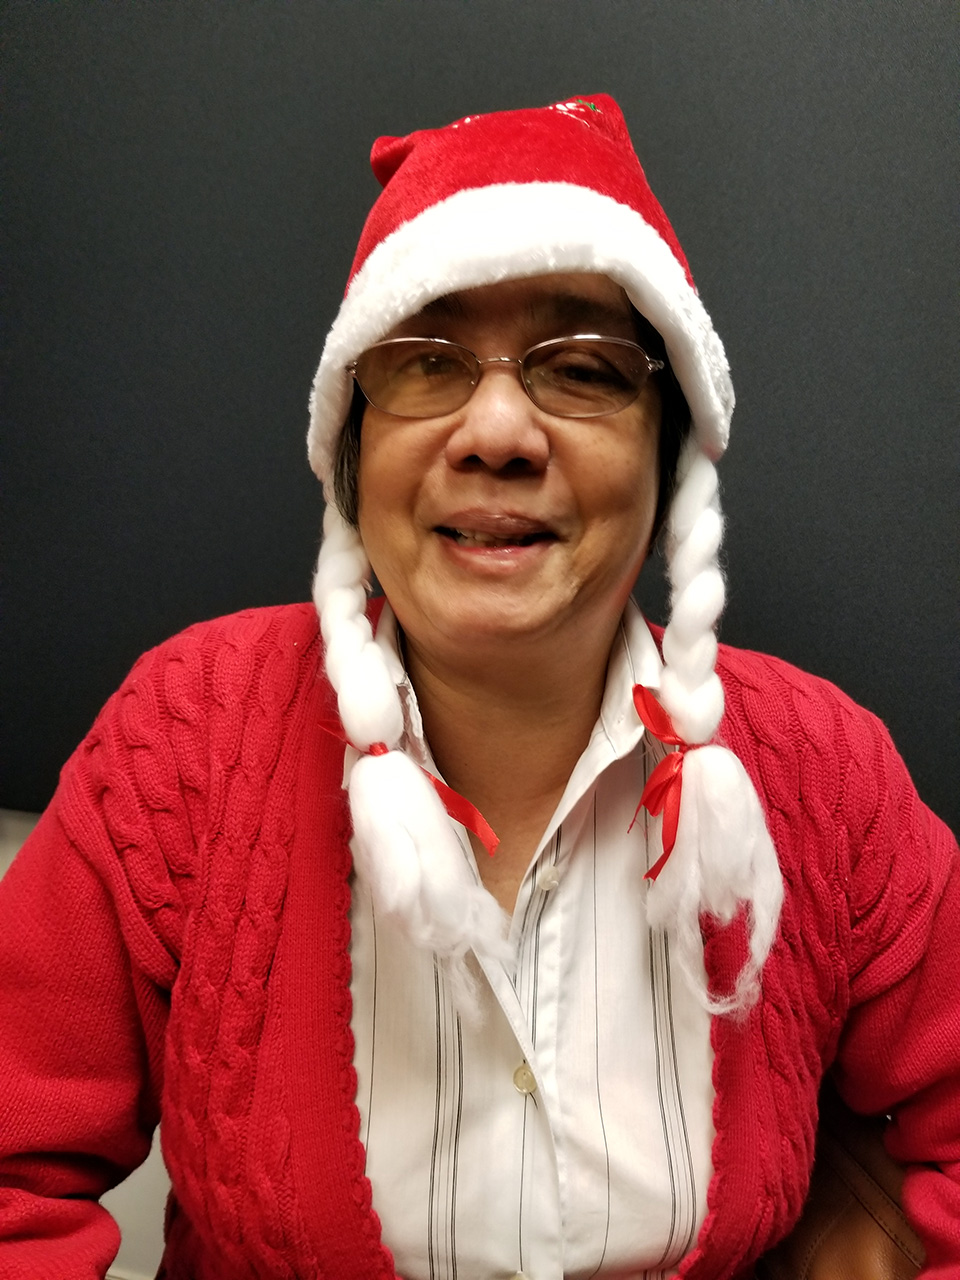 Photo of Author Donna Jodhan as Mrs. Claus.